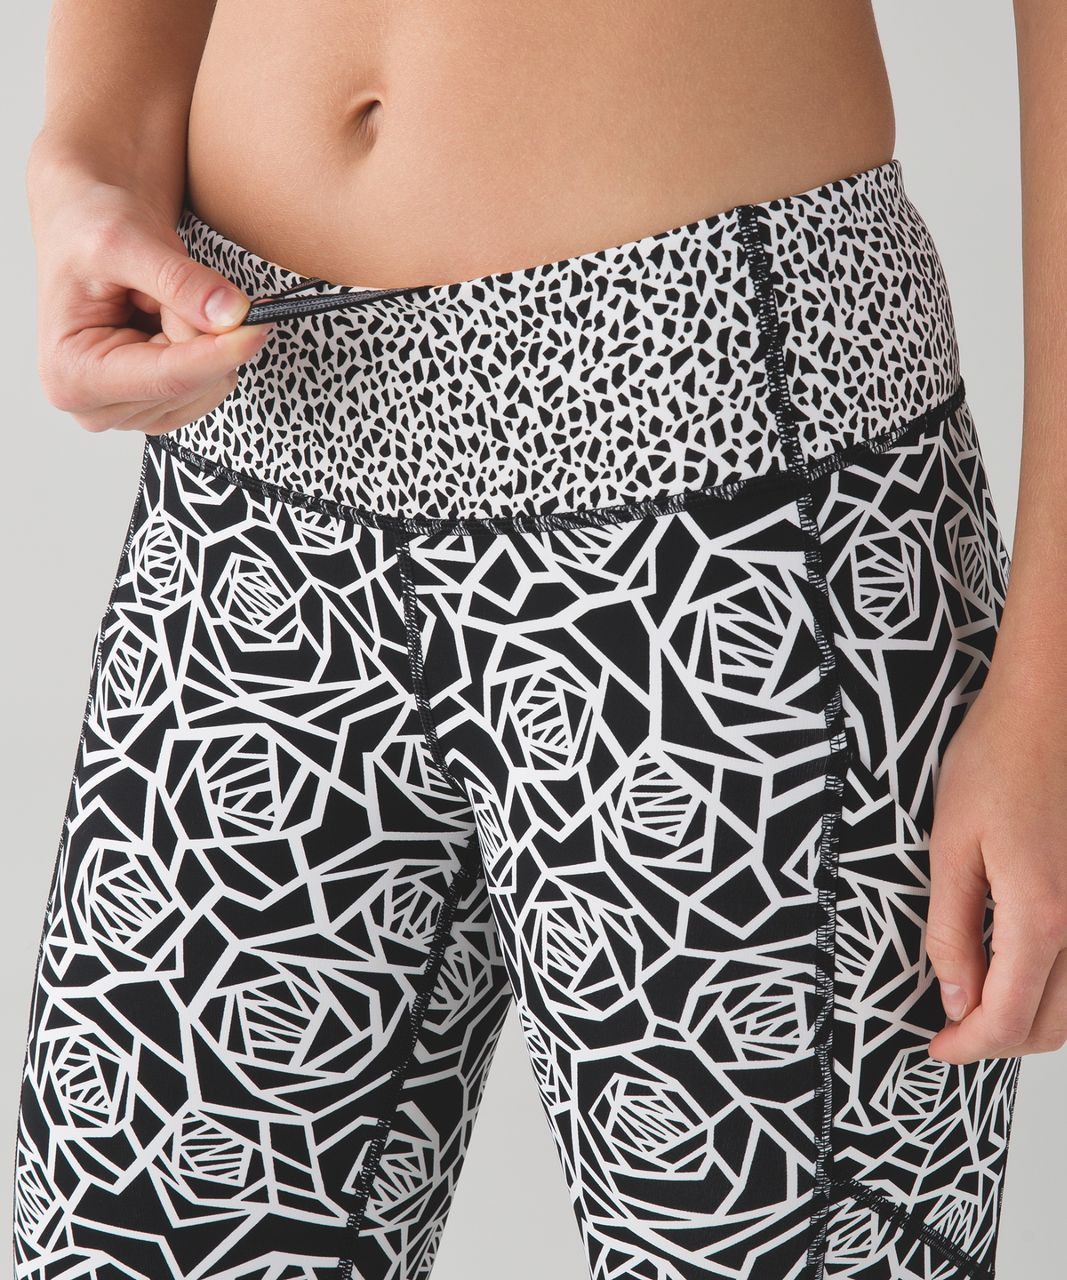 Lululemon Speed Tight IV - Posey White Black / White / Miss Mosaic White